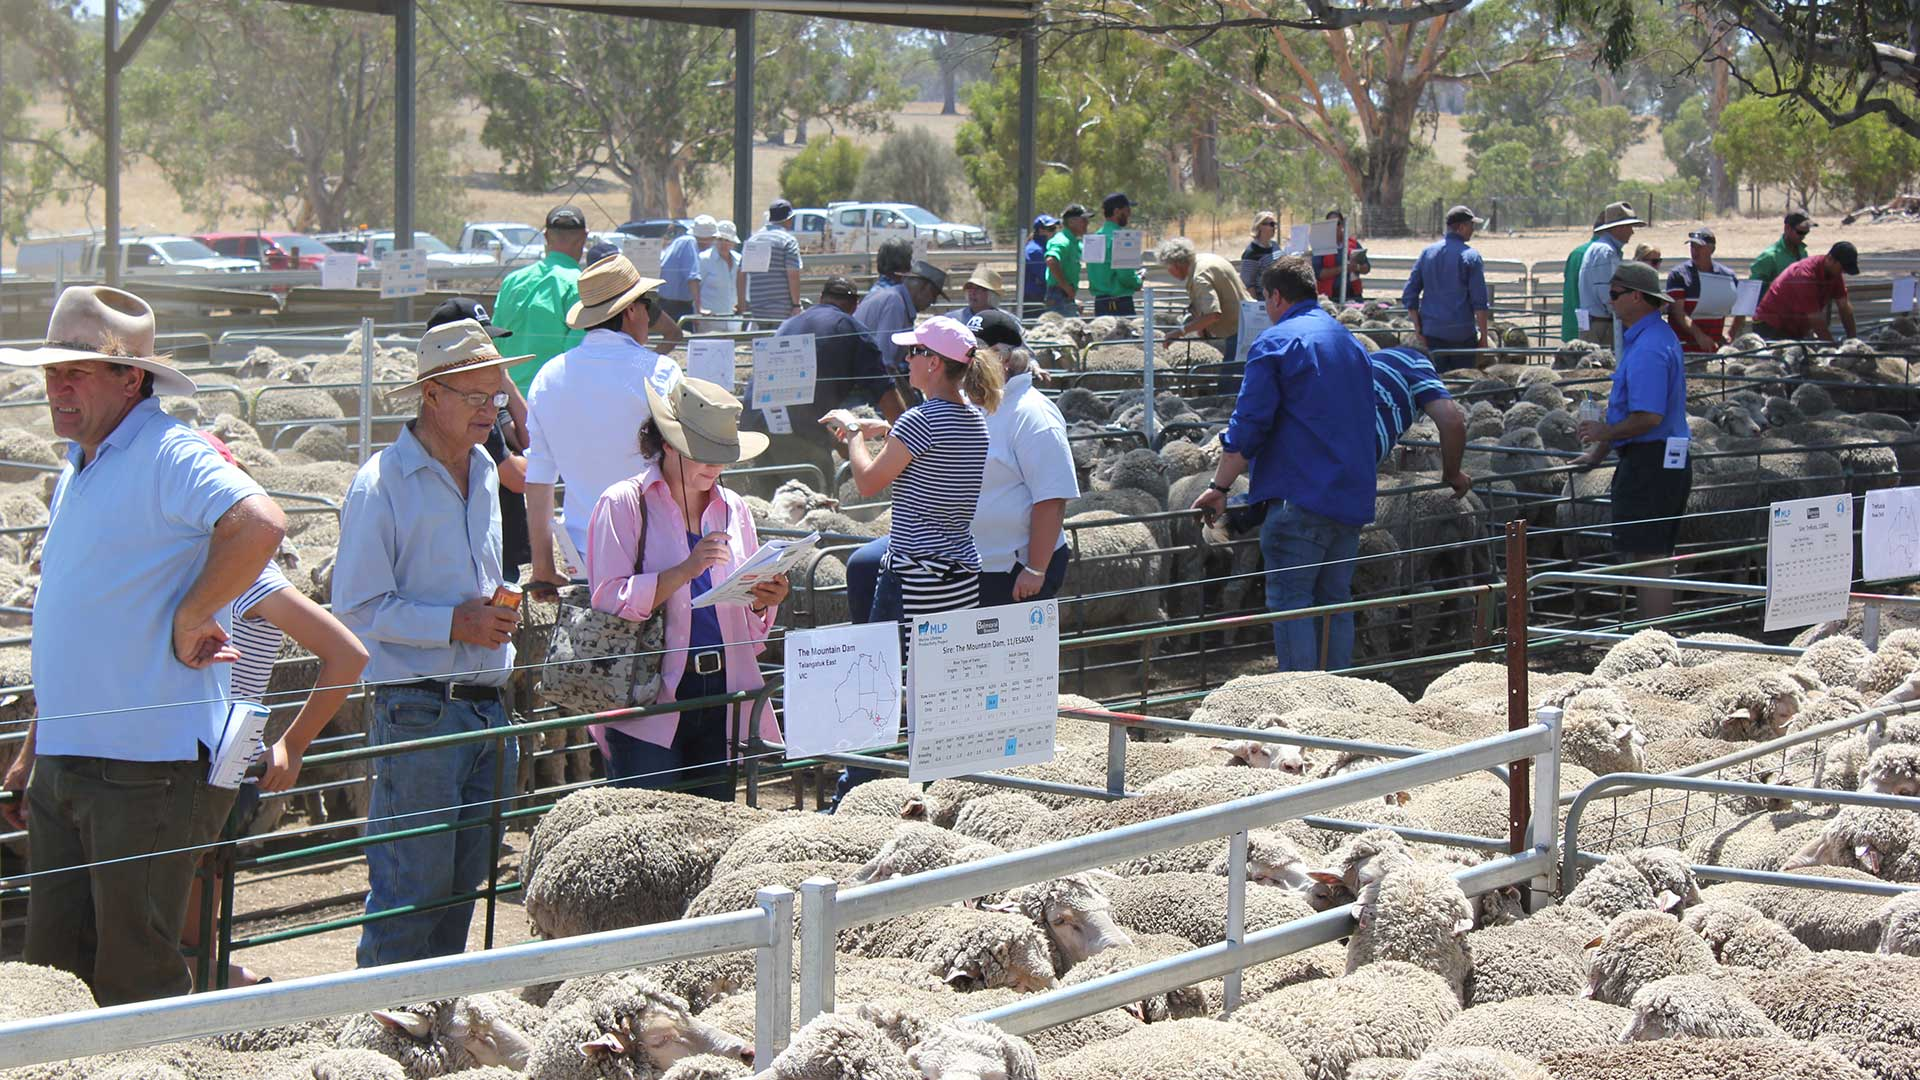 Balmoral - Merino Sheep Pens Viewing | Merino Superior Sires